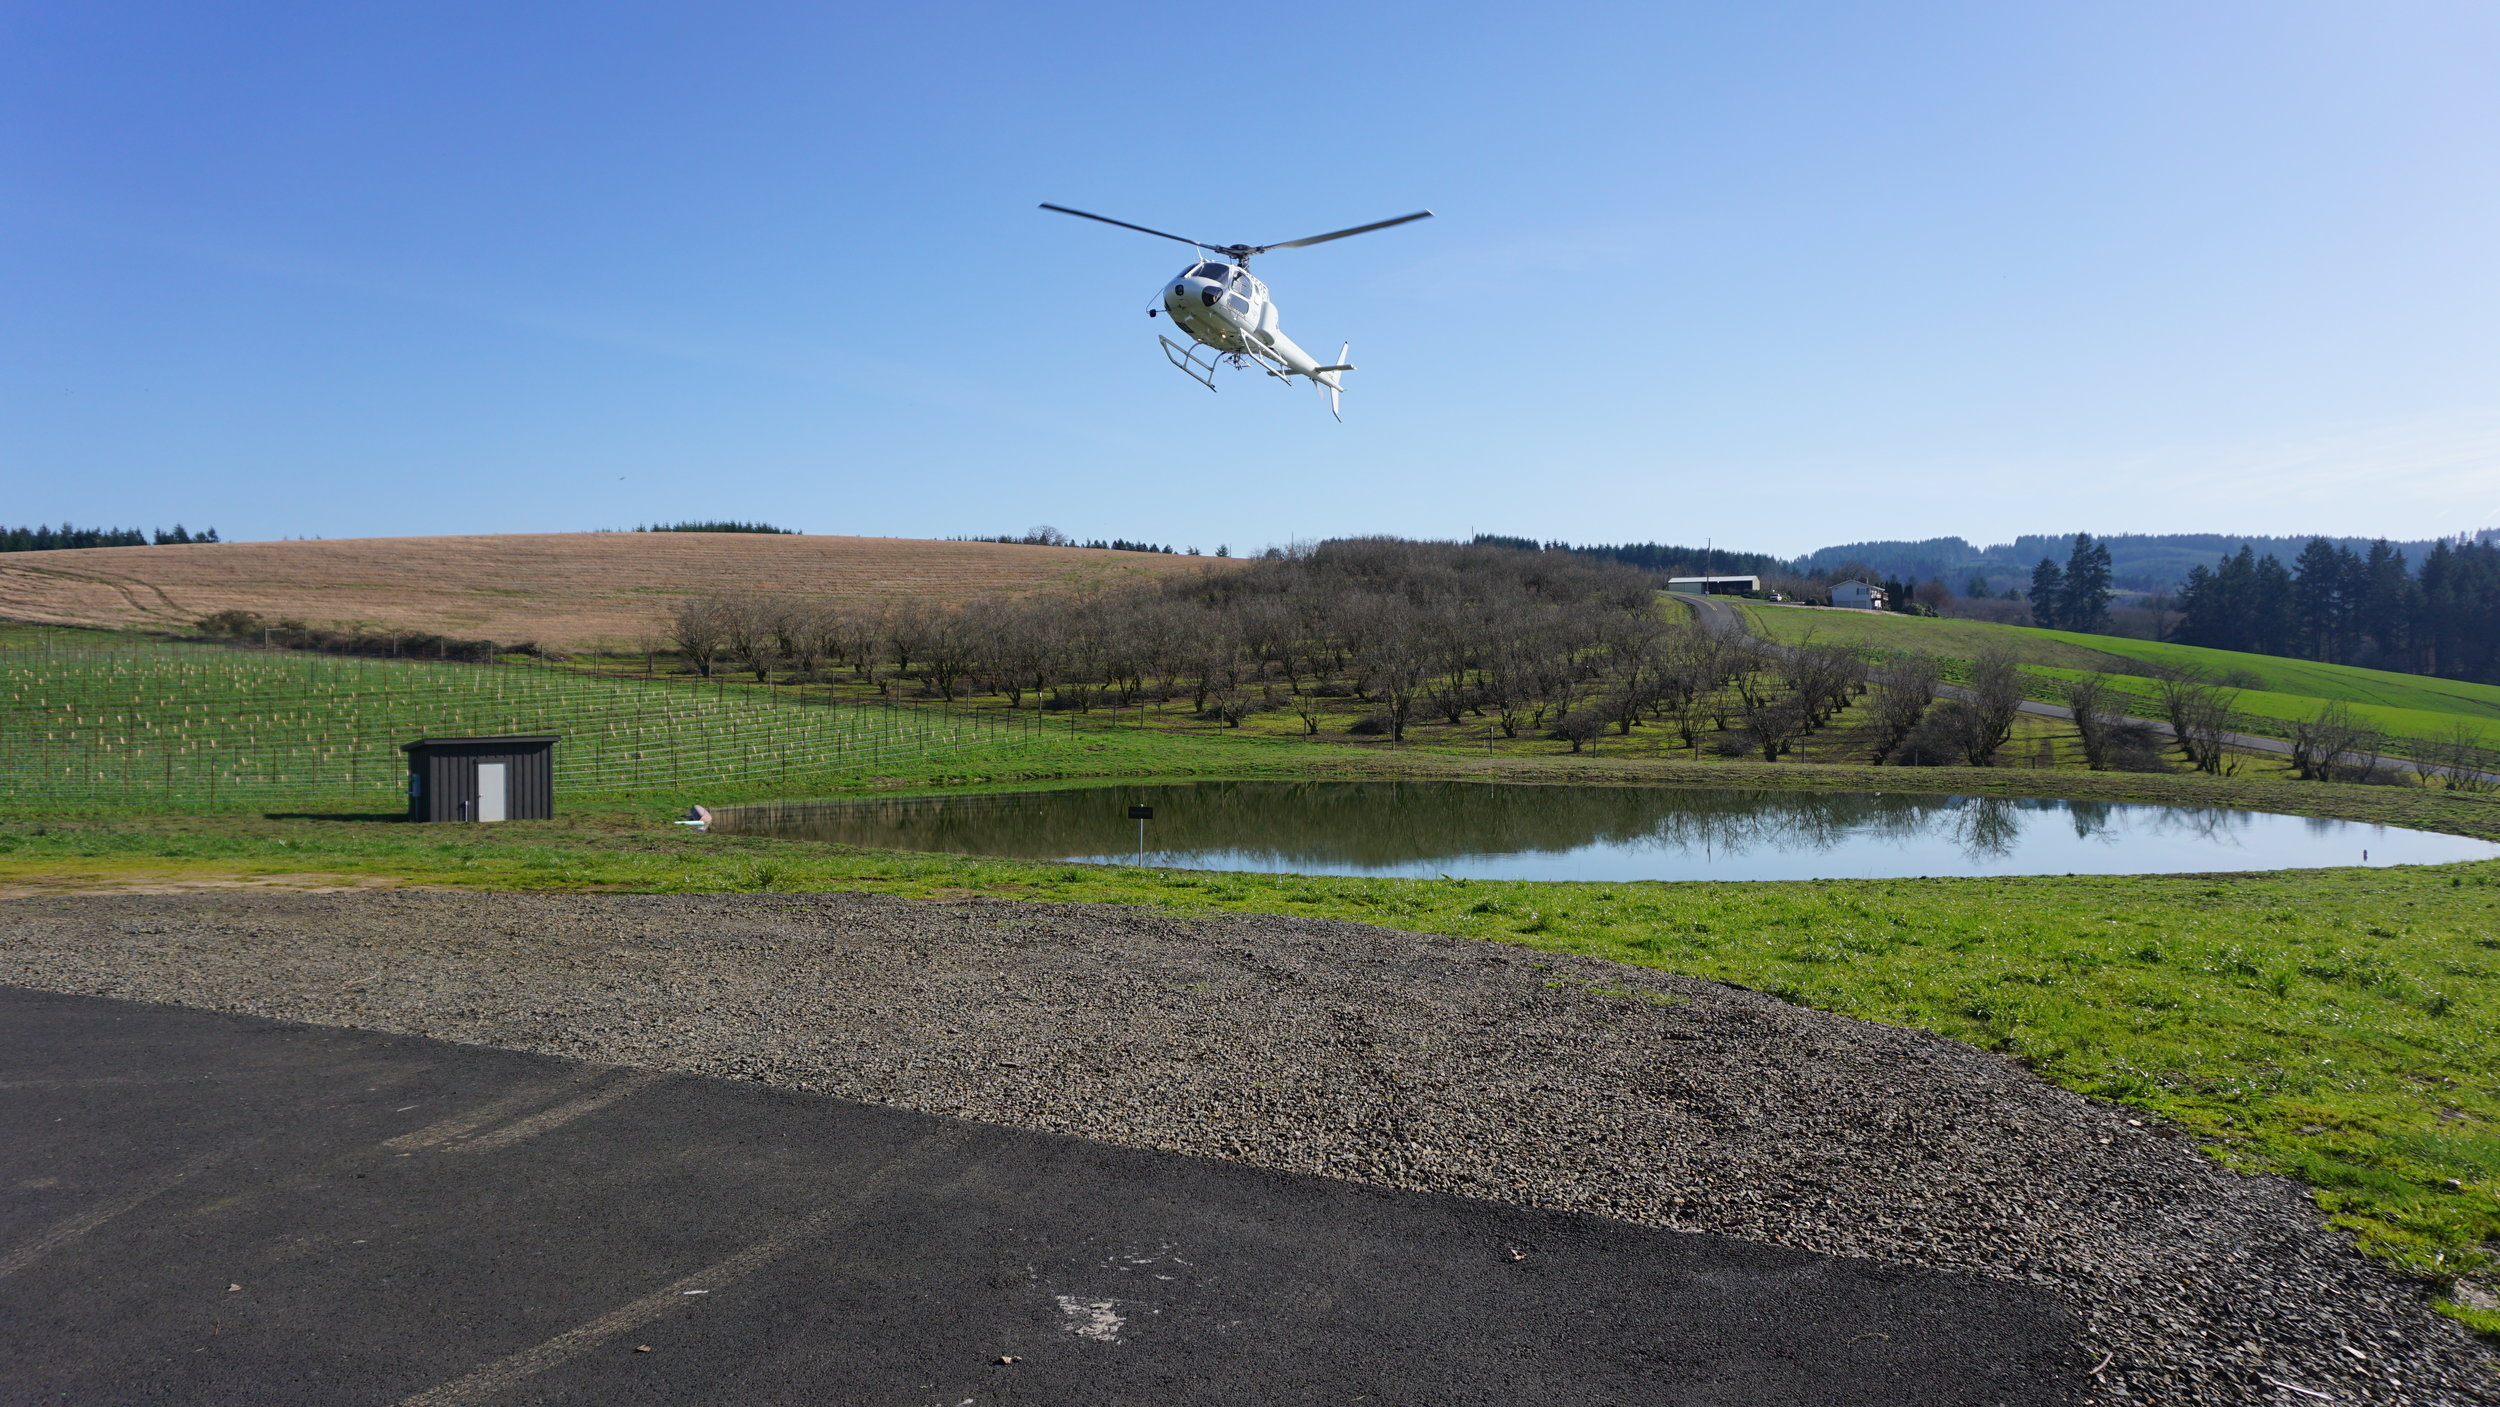 Tour DeVine, operated by Precision Helicopters, approaches Ponzi Vineyards  in the Ribbon Ridge AVA on a custom wine tour. Viki Eierdam